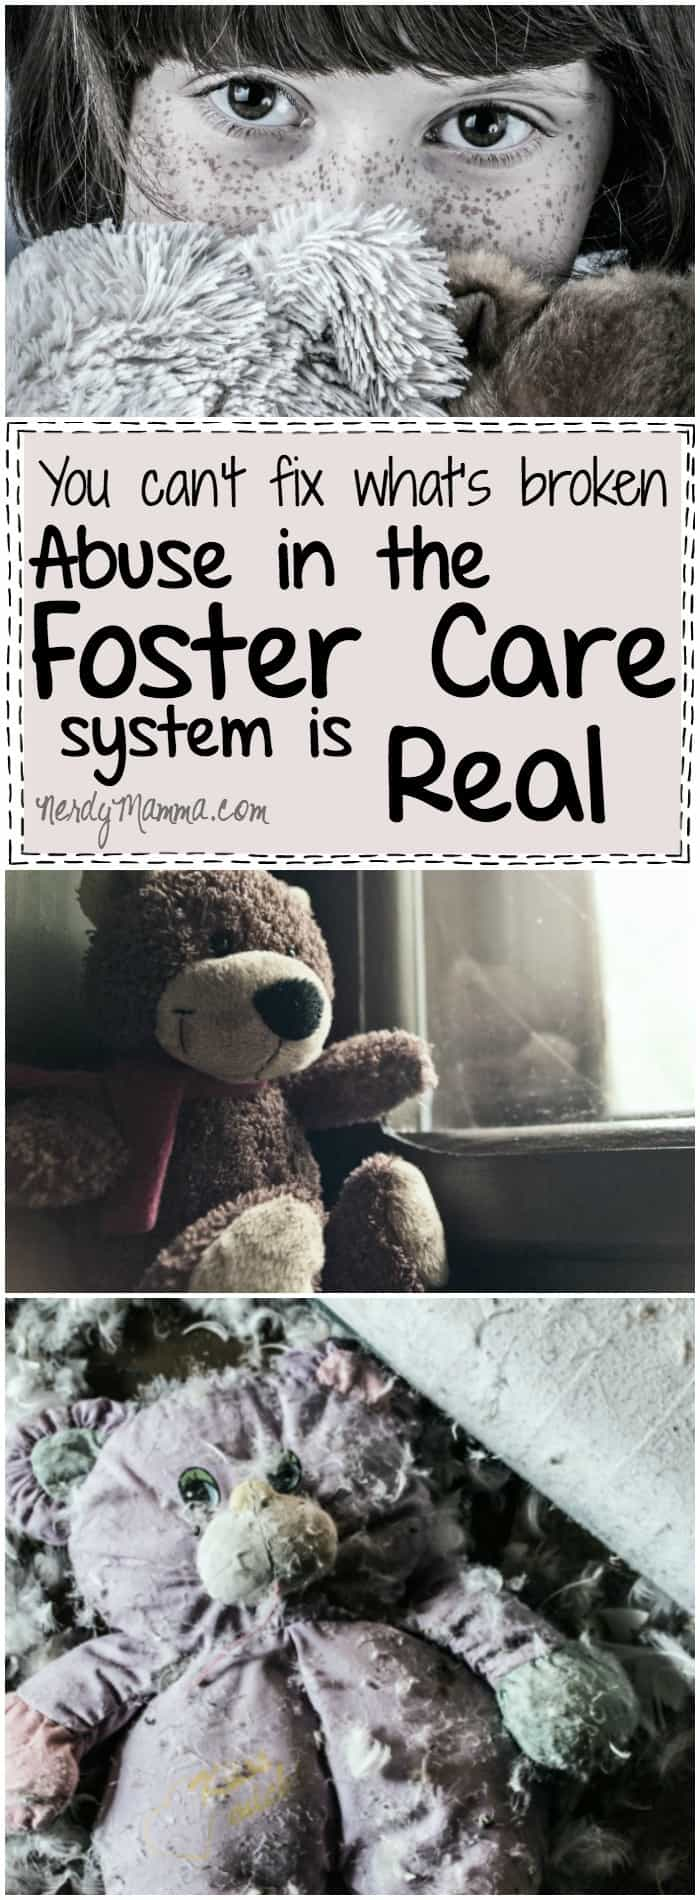 This mom's thoughts on the foster care system and the abuses her son suffered. This is hard to read.